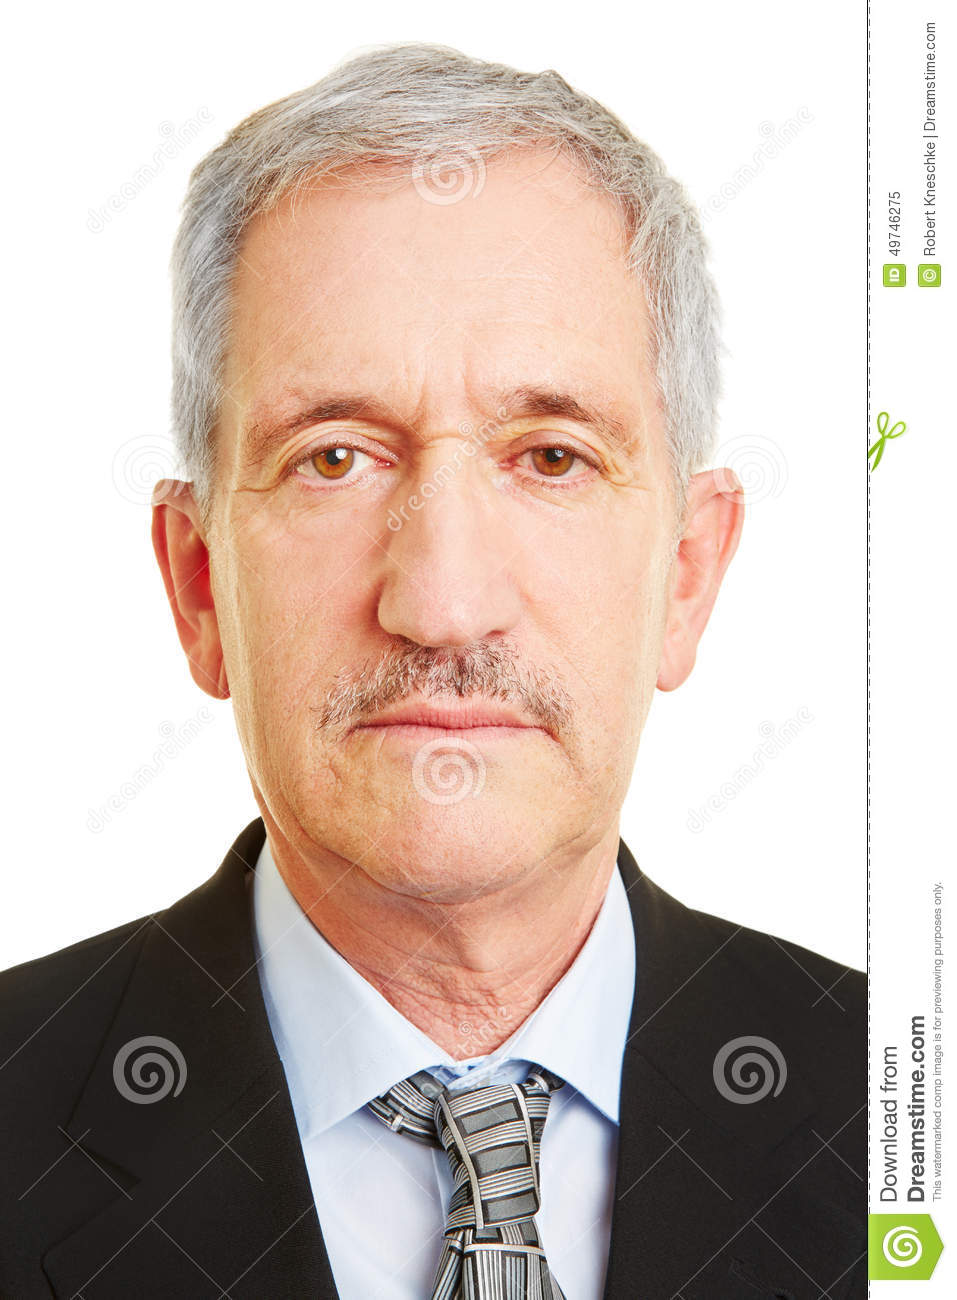 Neutral Face Of Old Business Man Stock Photo - Image: 49746275